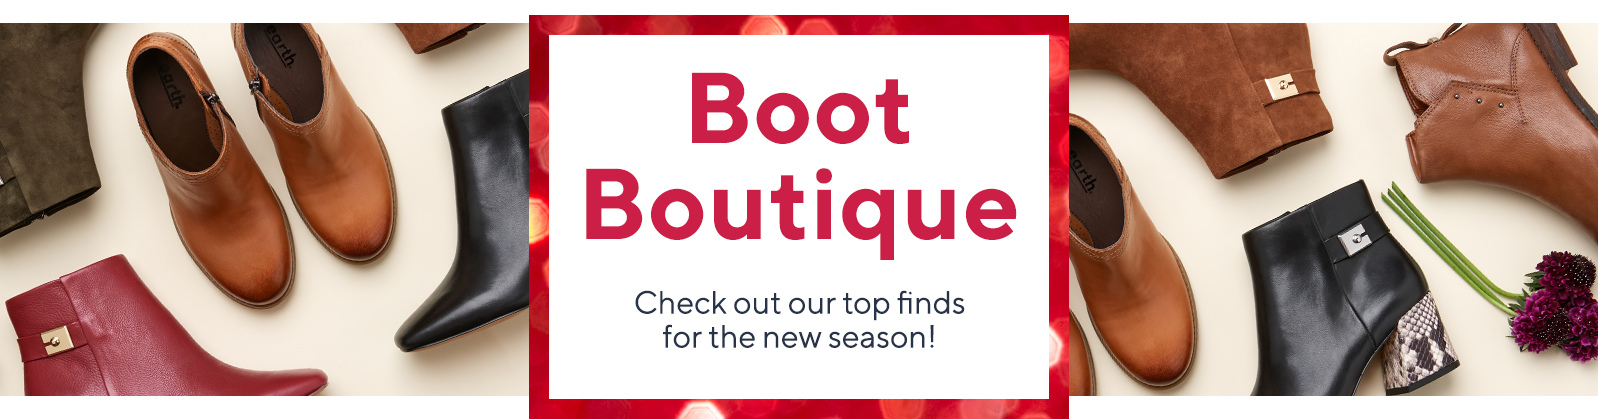 Boot Boutique - Check out our top finds for the new season!